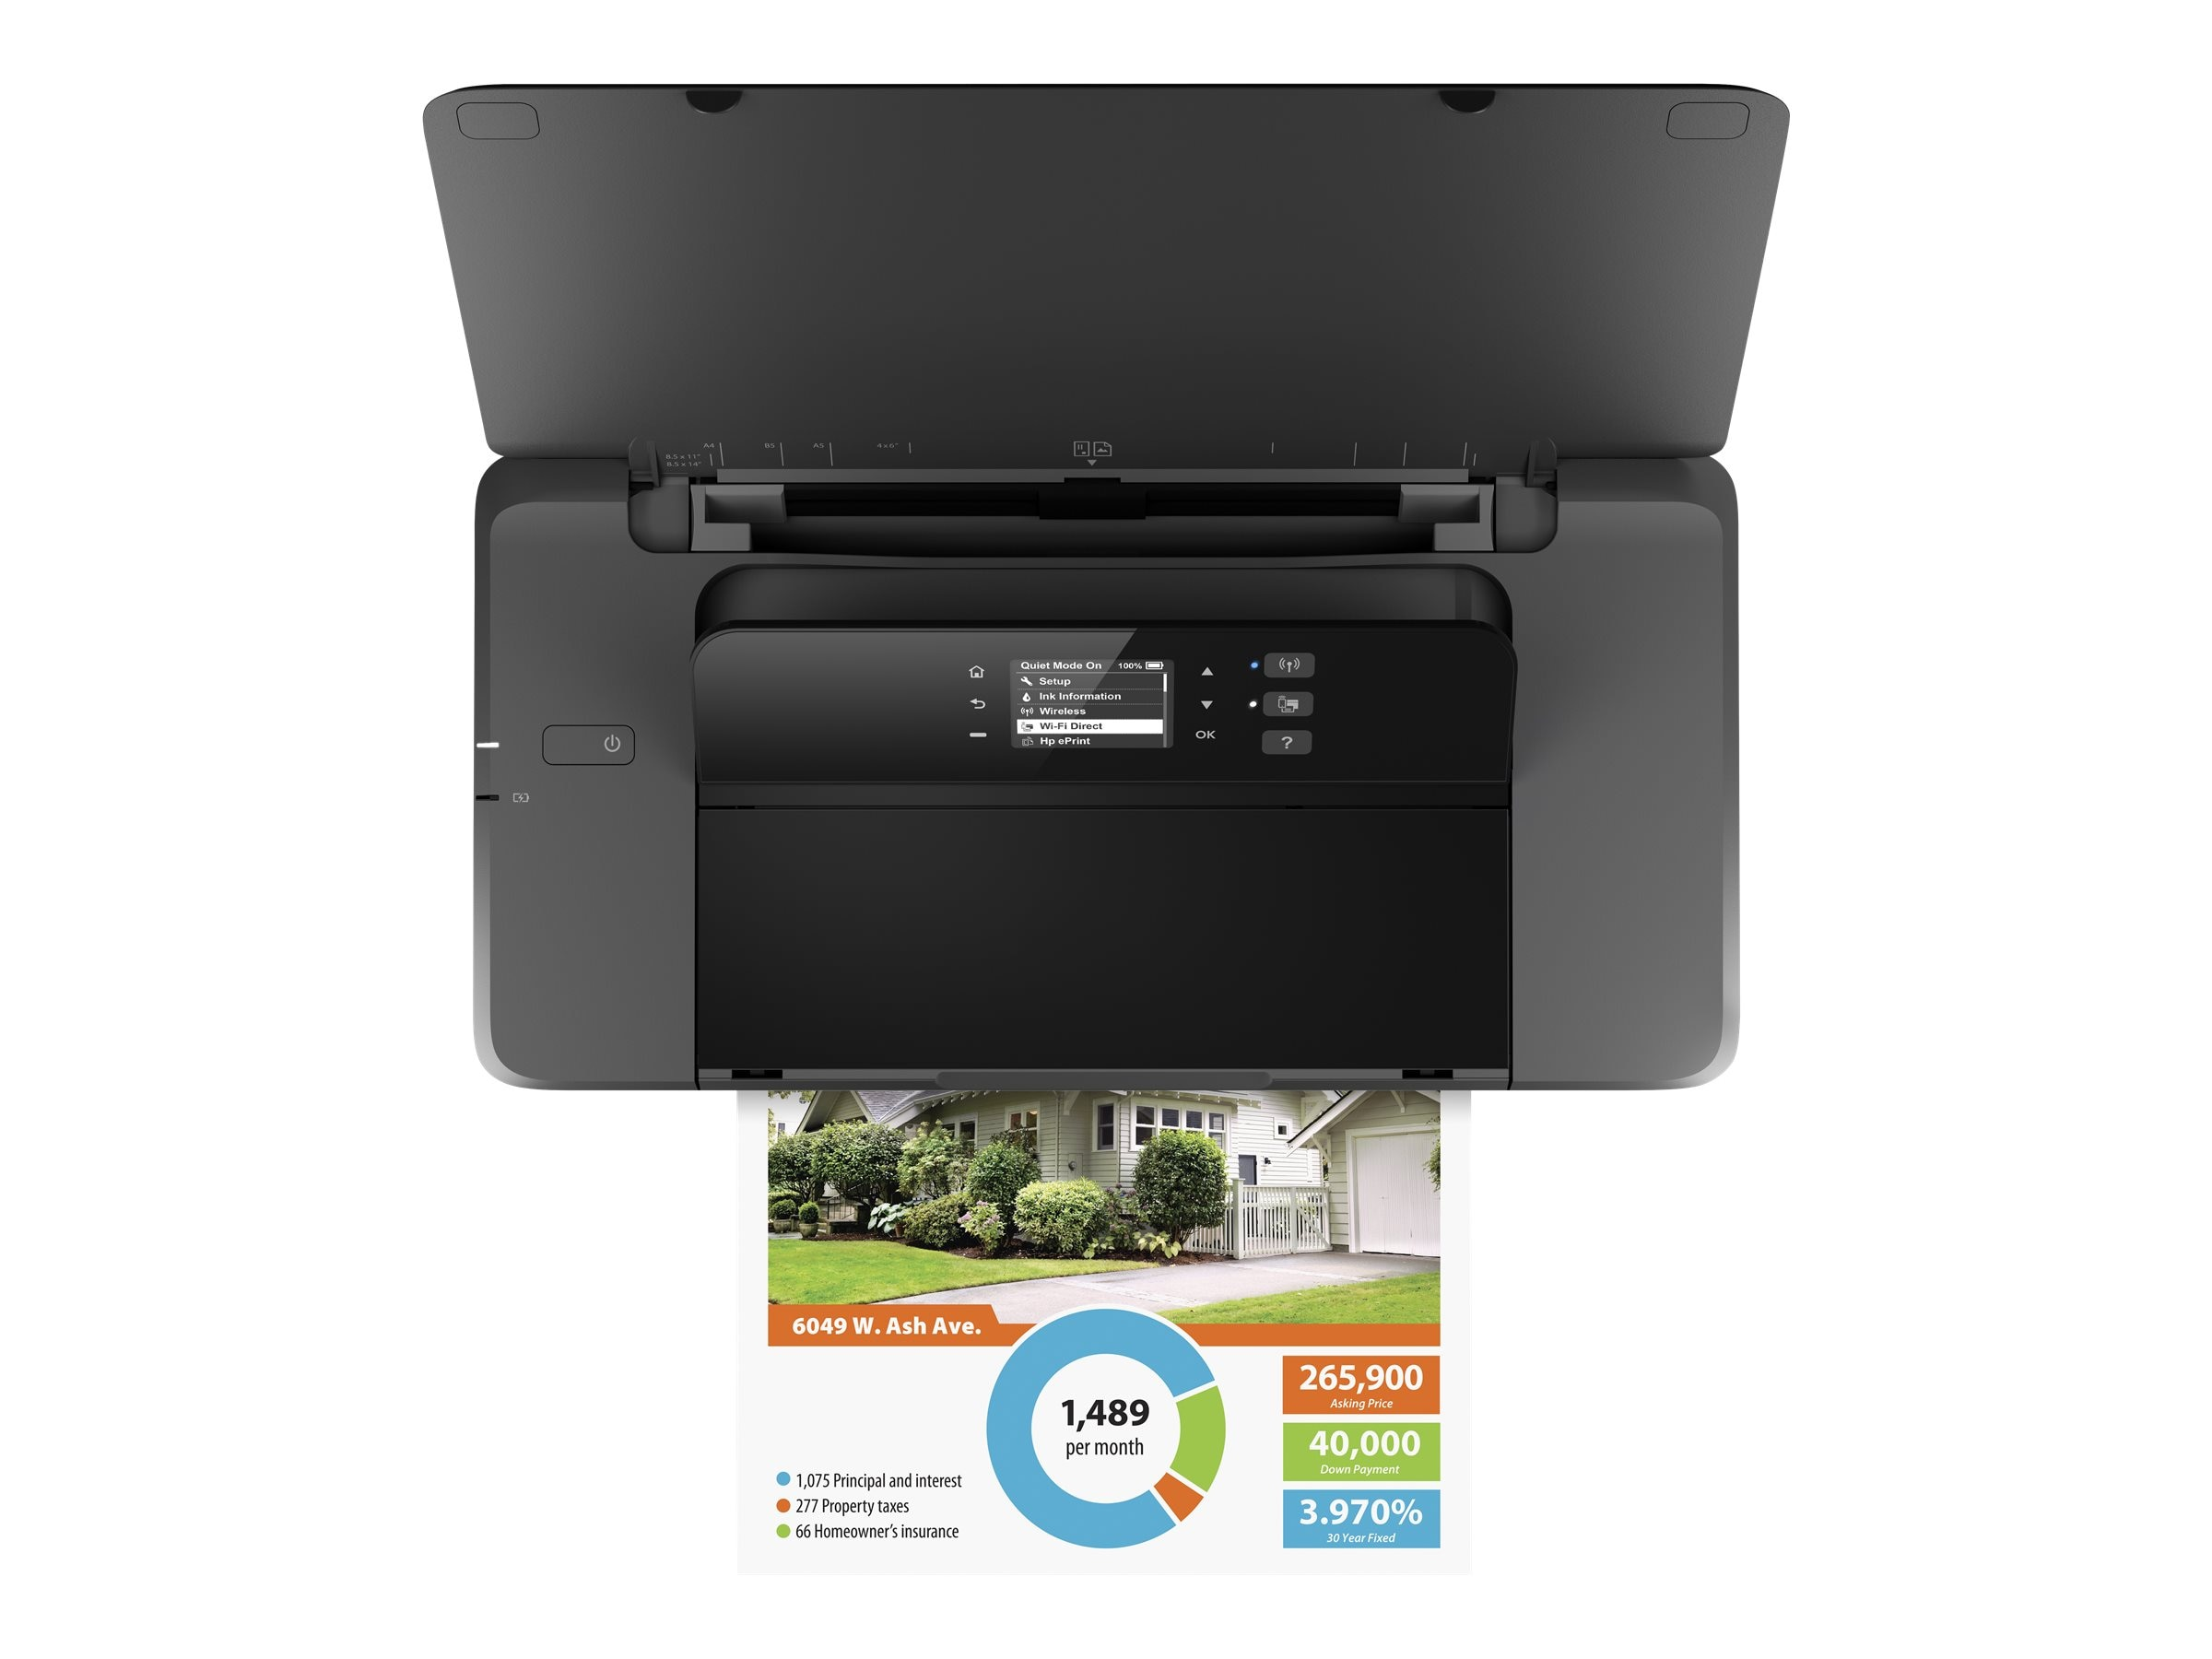 HP Officejet 200 Mobile Printer ($279 - $50 Instant Rebate = $229 Expires 11 30), CZ993A#B1H